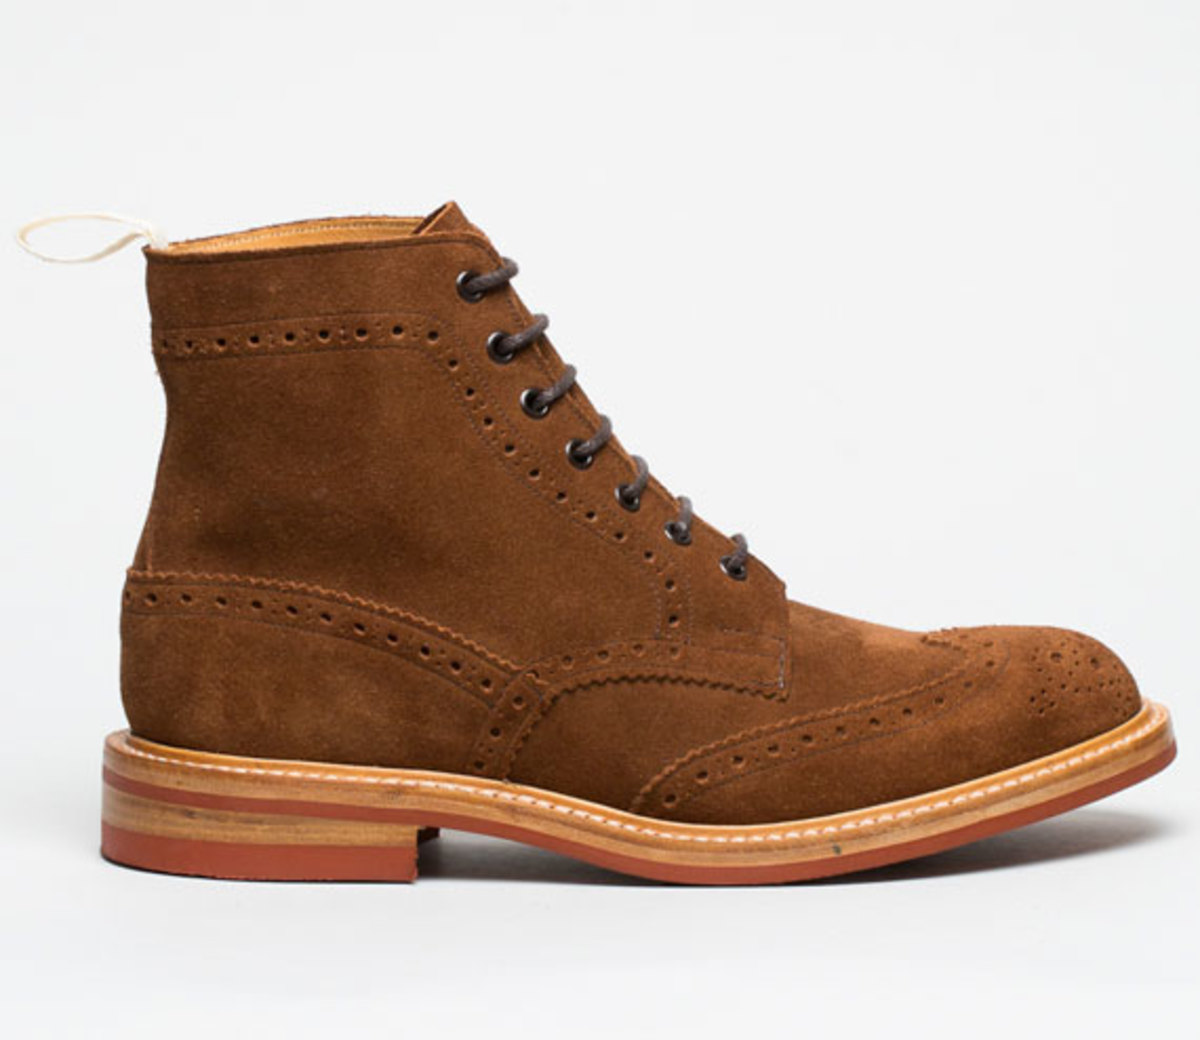 norse-projects-trickers-repello-brogue-boots-04